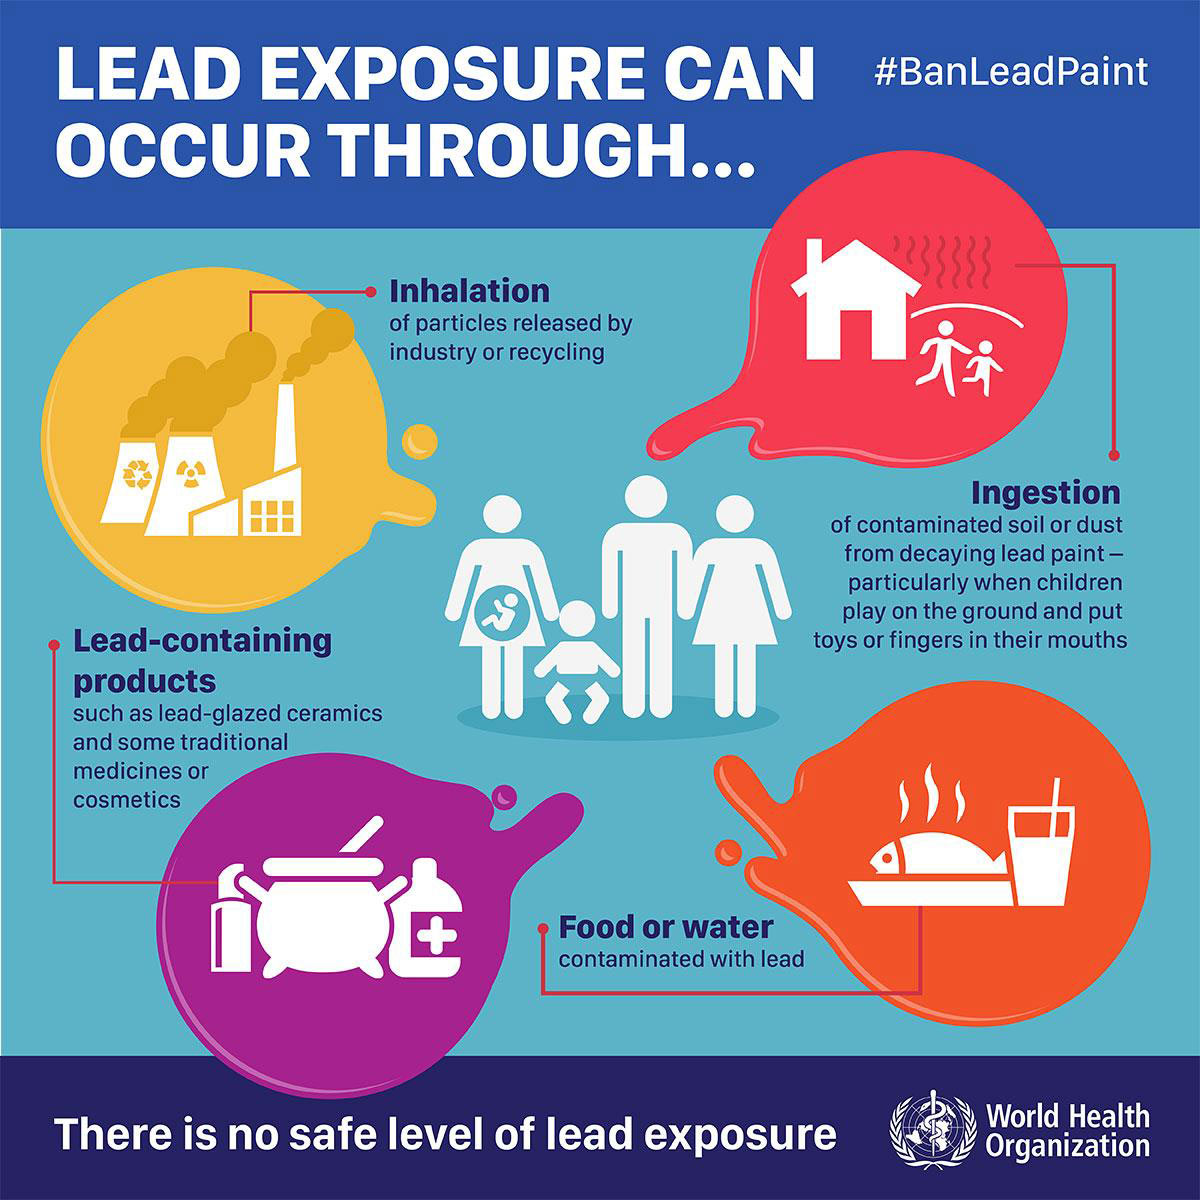 Lead exposure can occur through inhalation of particles released by industry or recylicing, ingestion of contaminated soil or dust from decaying lead paint particulary when children play on the ground and put toys or fingers in their mouths, lead-containing products such as lead-glazed ceramics and some traditional medicines or cosmetics, food or water contaminated with lead.